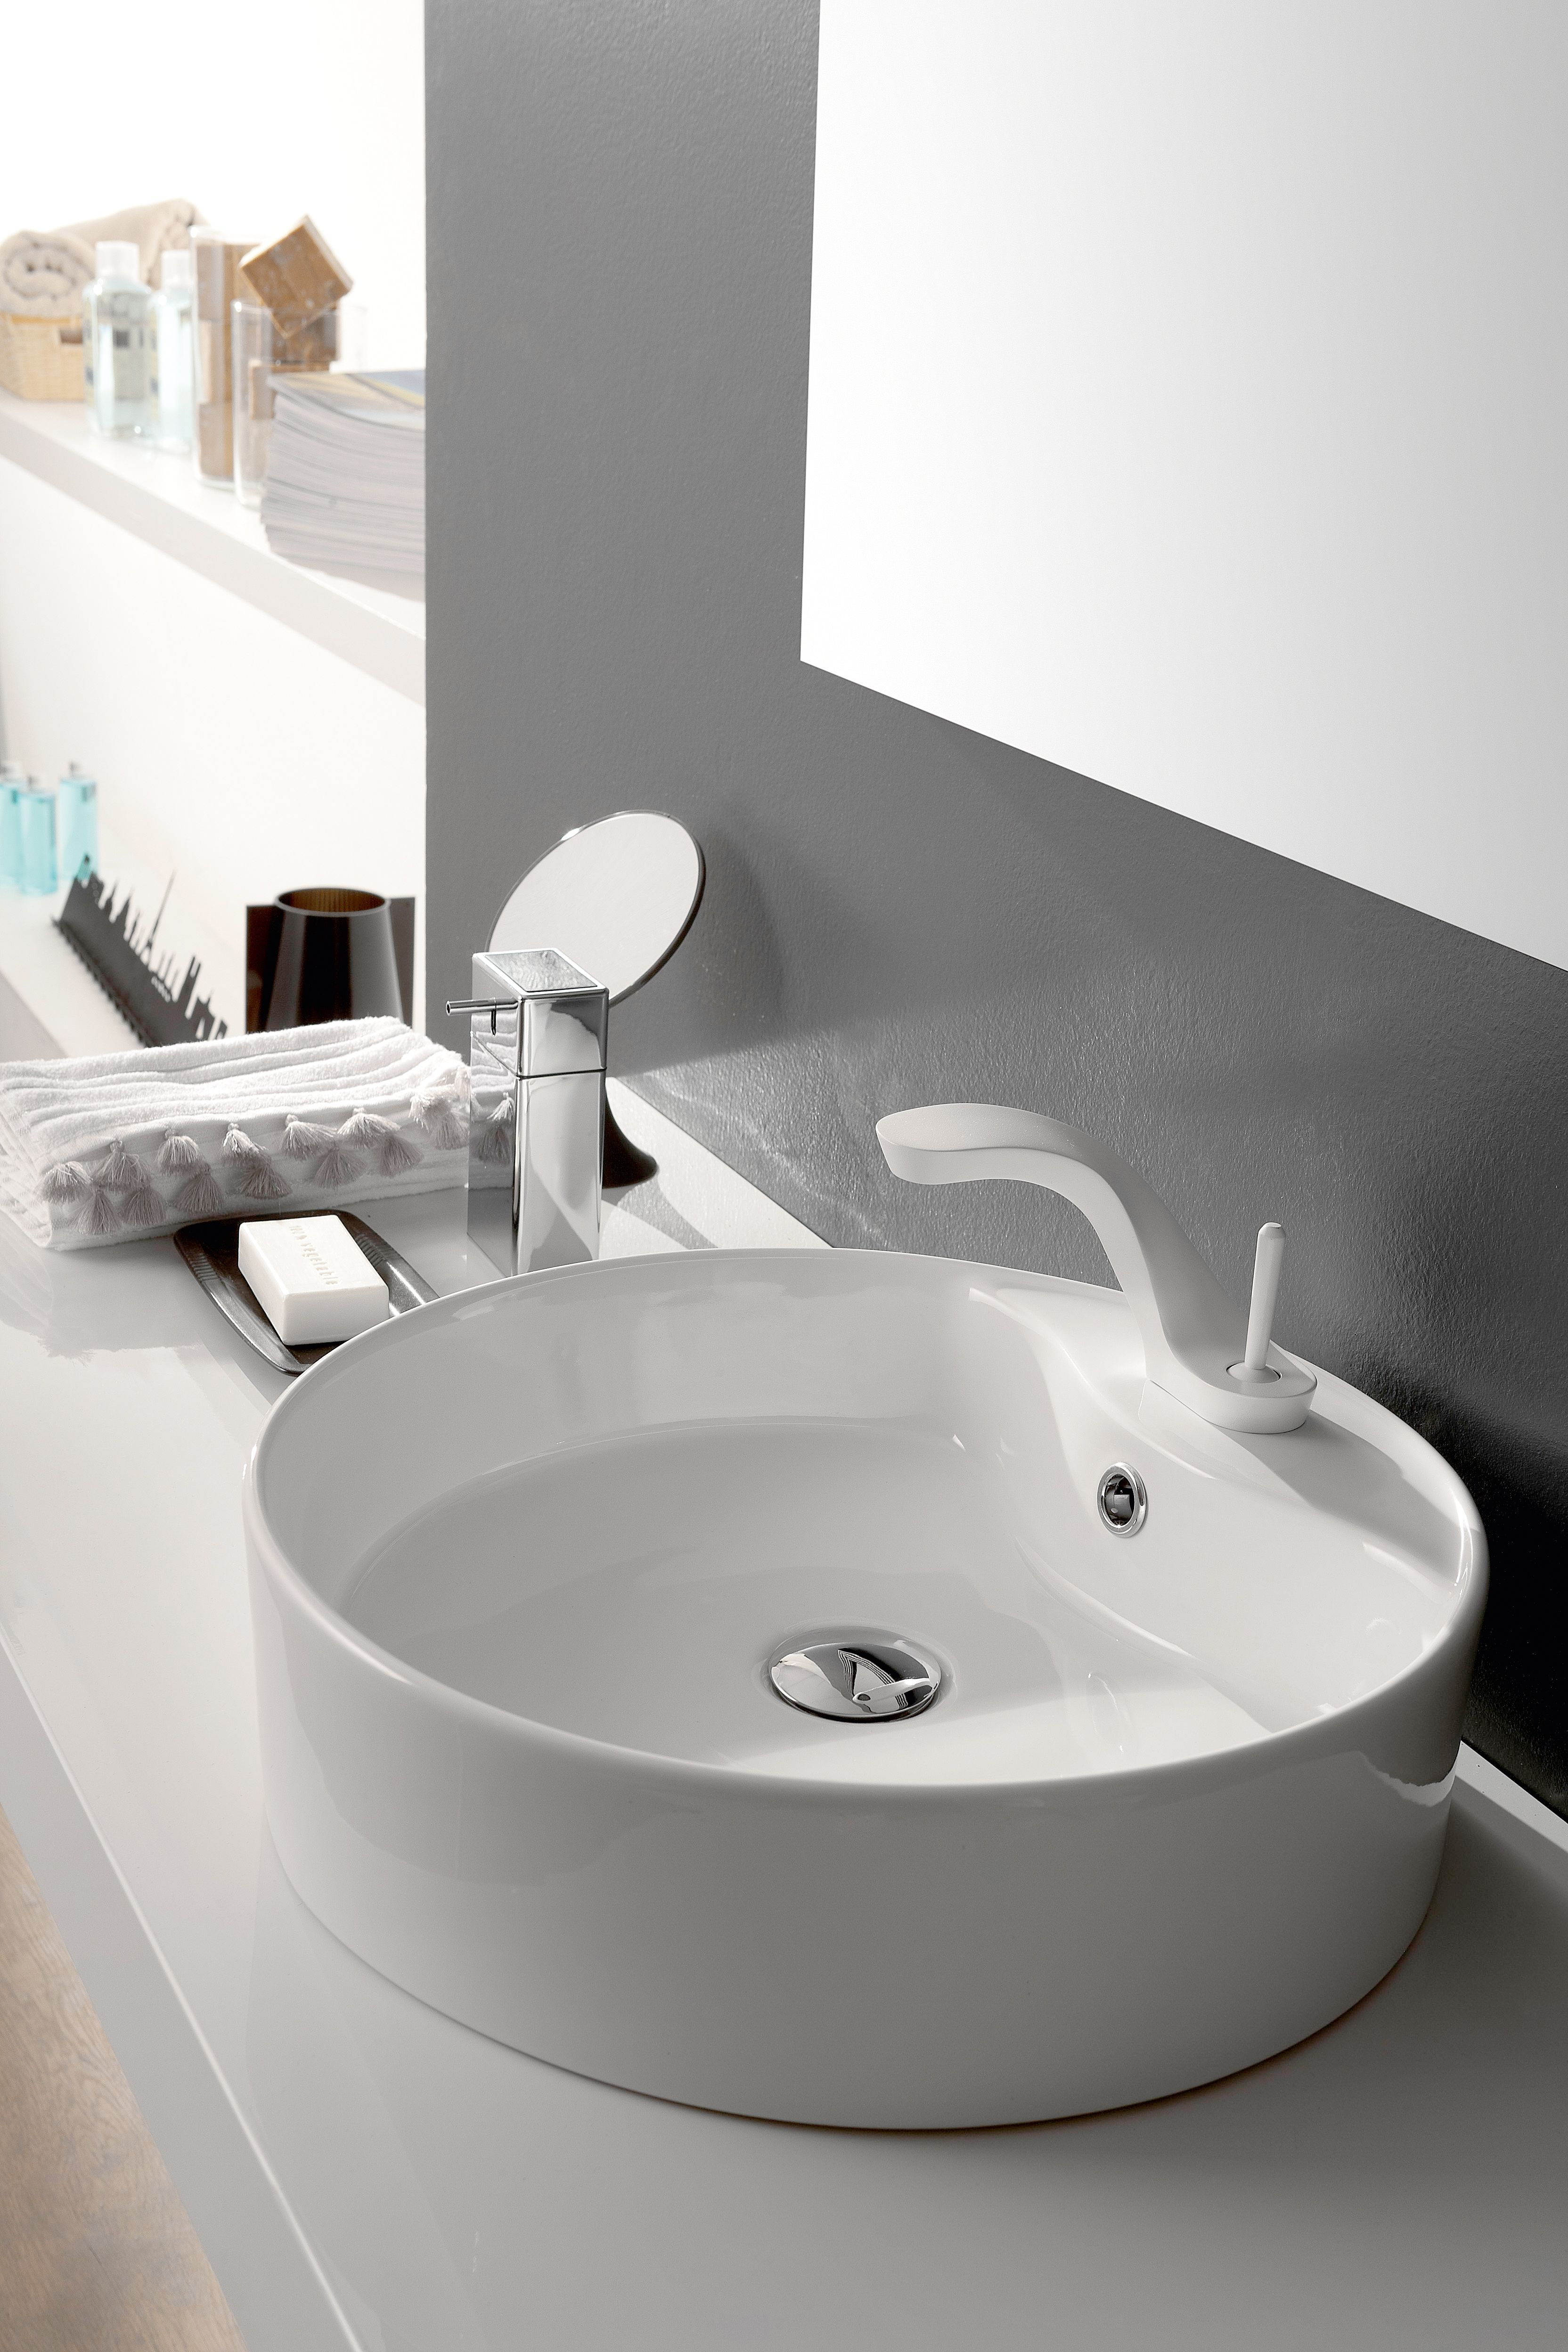 best picture l faucet cool design top rated bathrooms of faucets bathroom awesome reviews